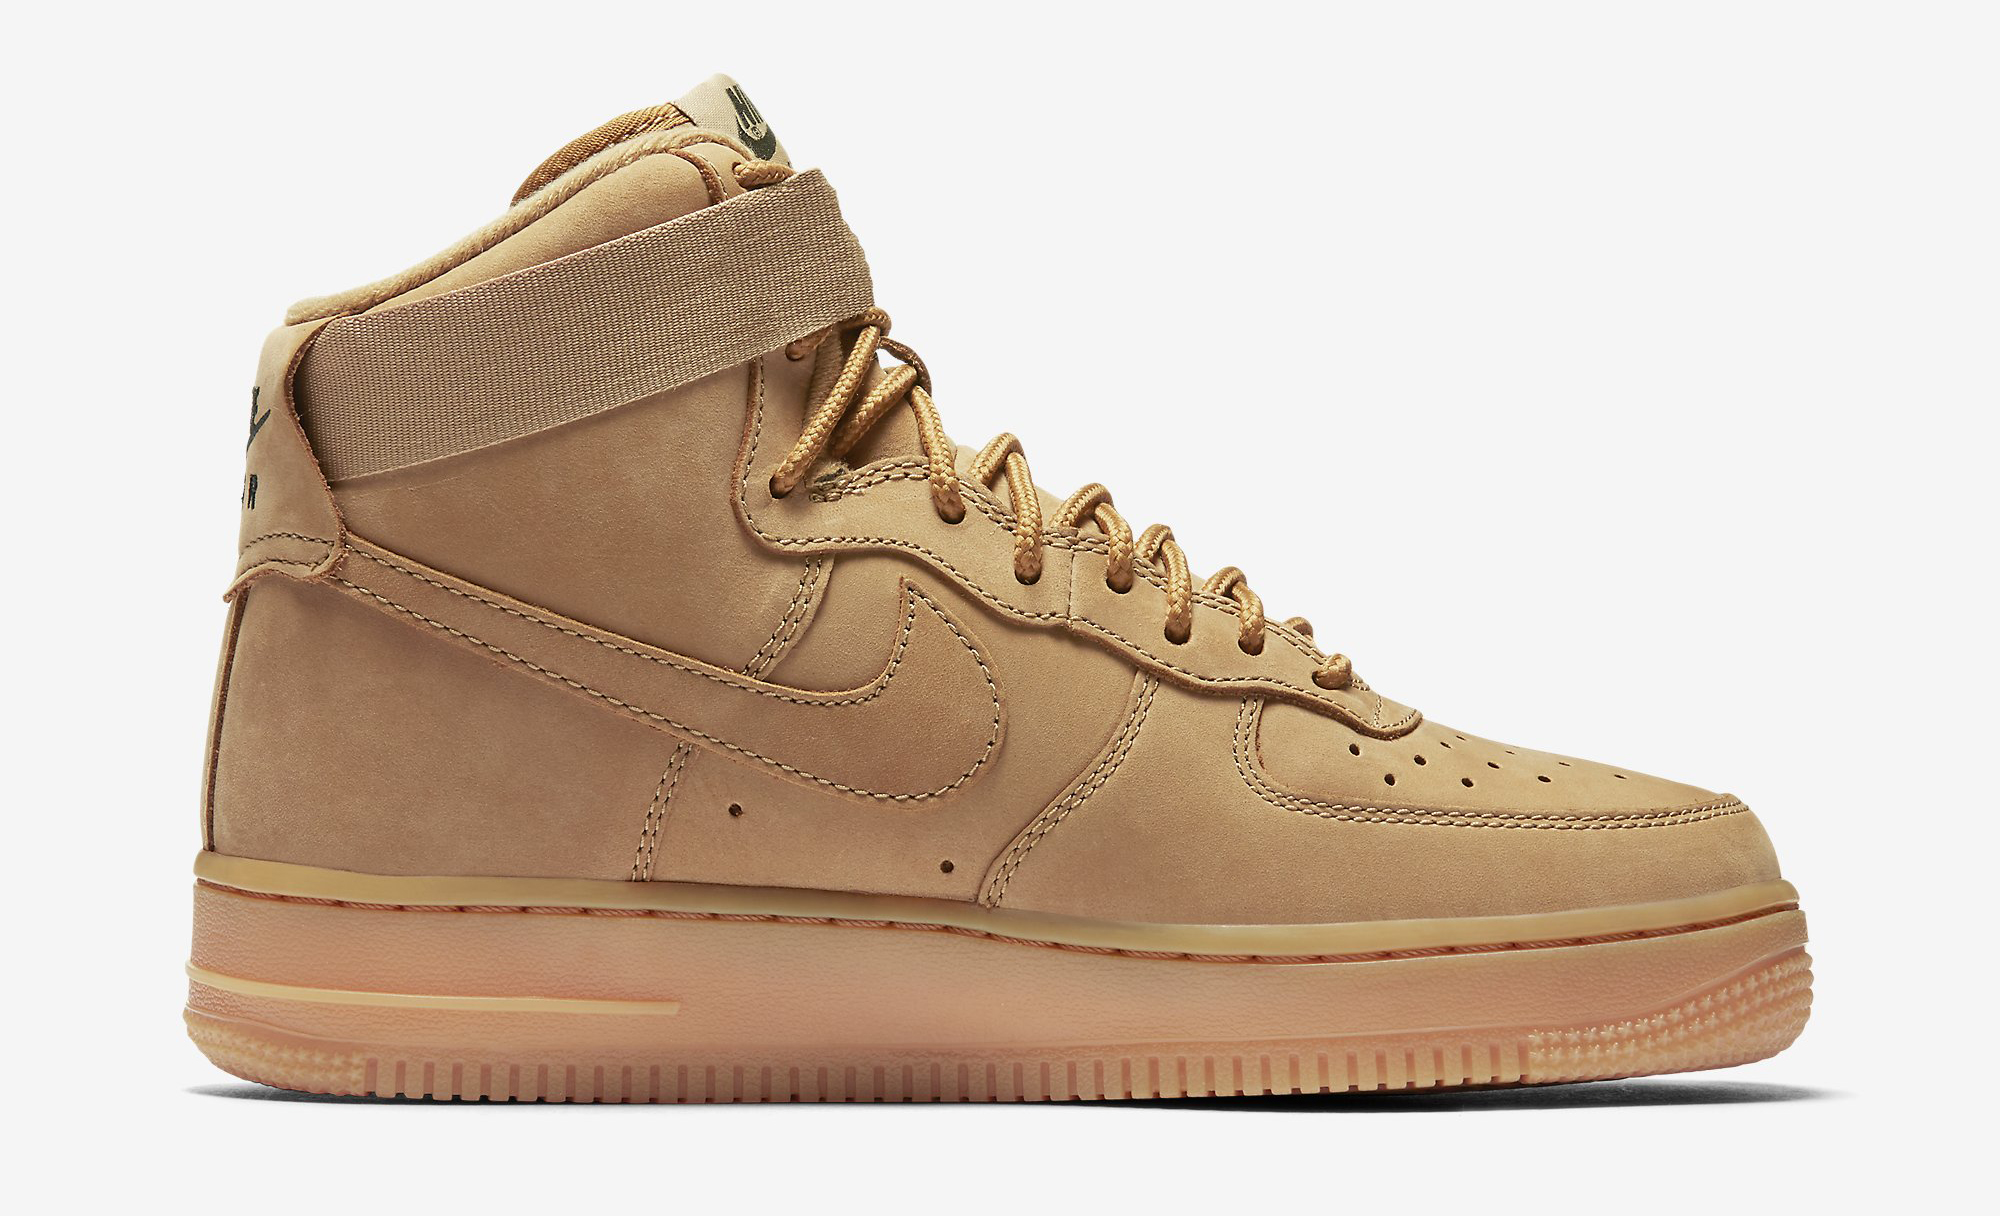 Wheat Nike Air Force 1 654440-200 Medial